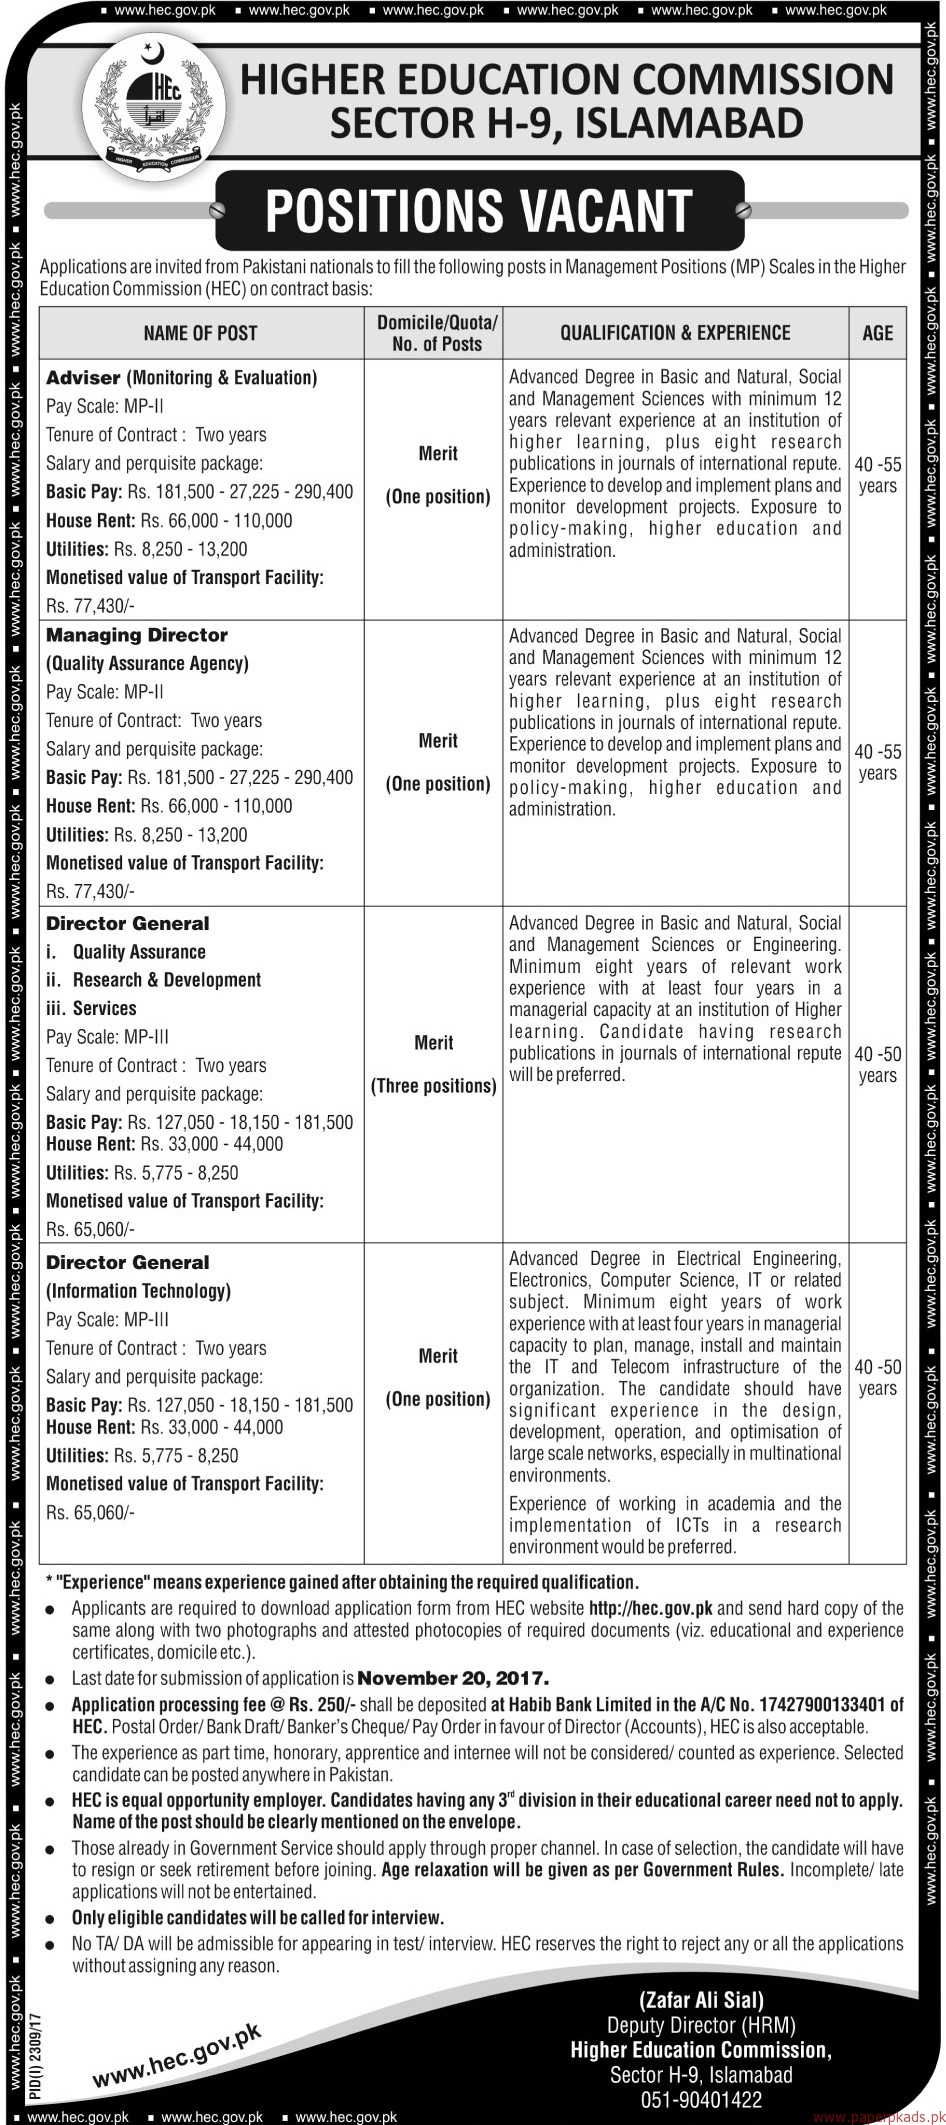 Higher Education Commission Jobs 2017 - PaperPk